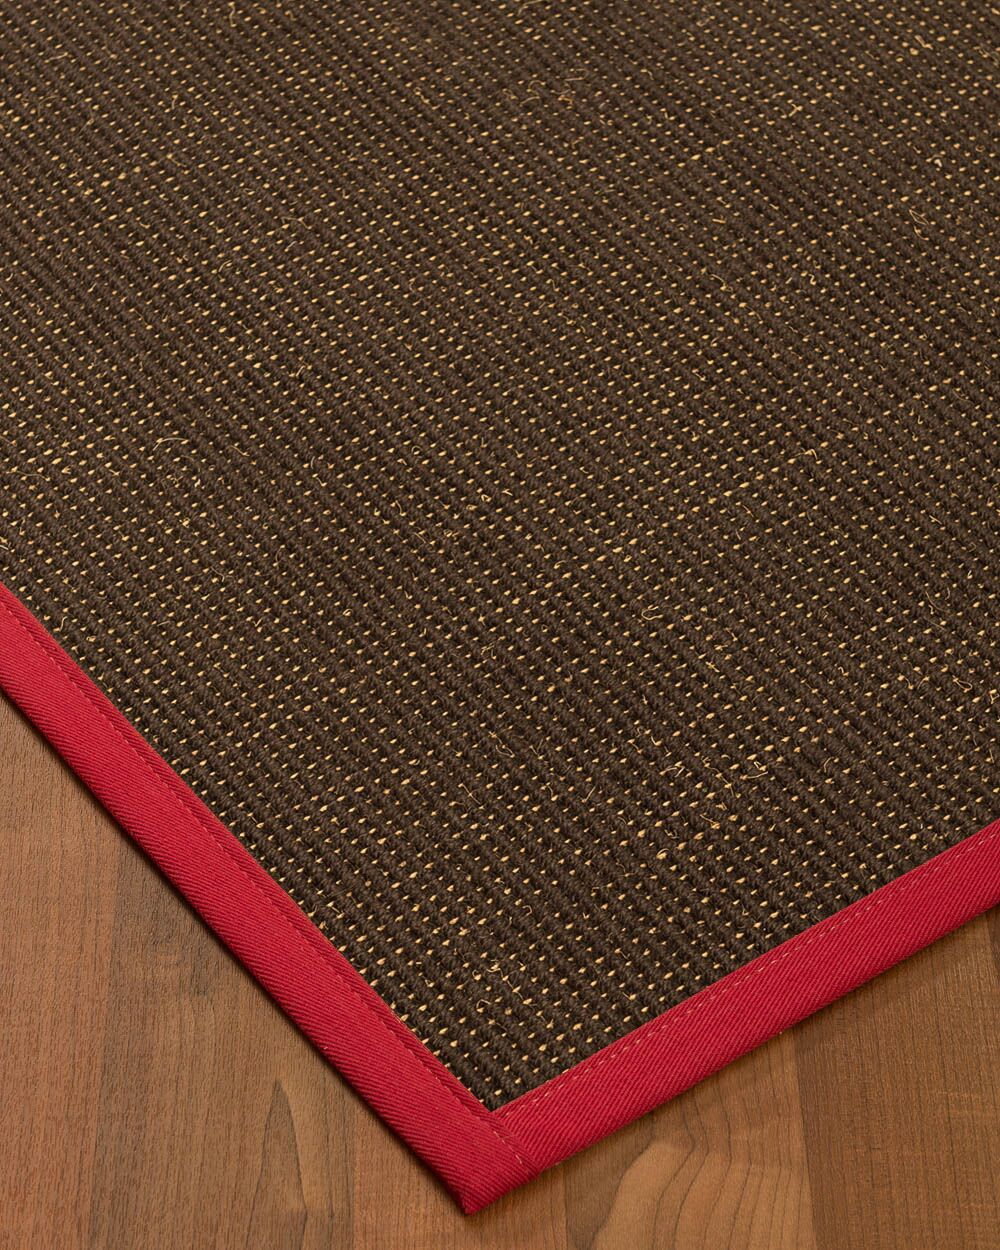 Kersh Border Hand-Woven Brown/Red Area Rug Rug Size: Rectangle 12' x 15', Rug Pad Included: Yes